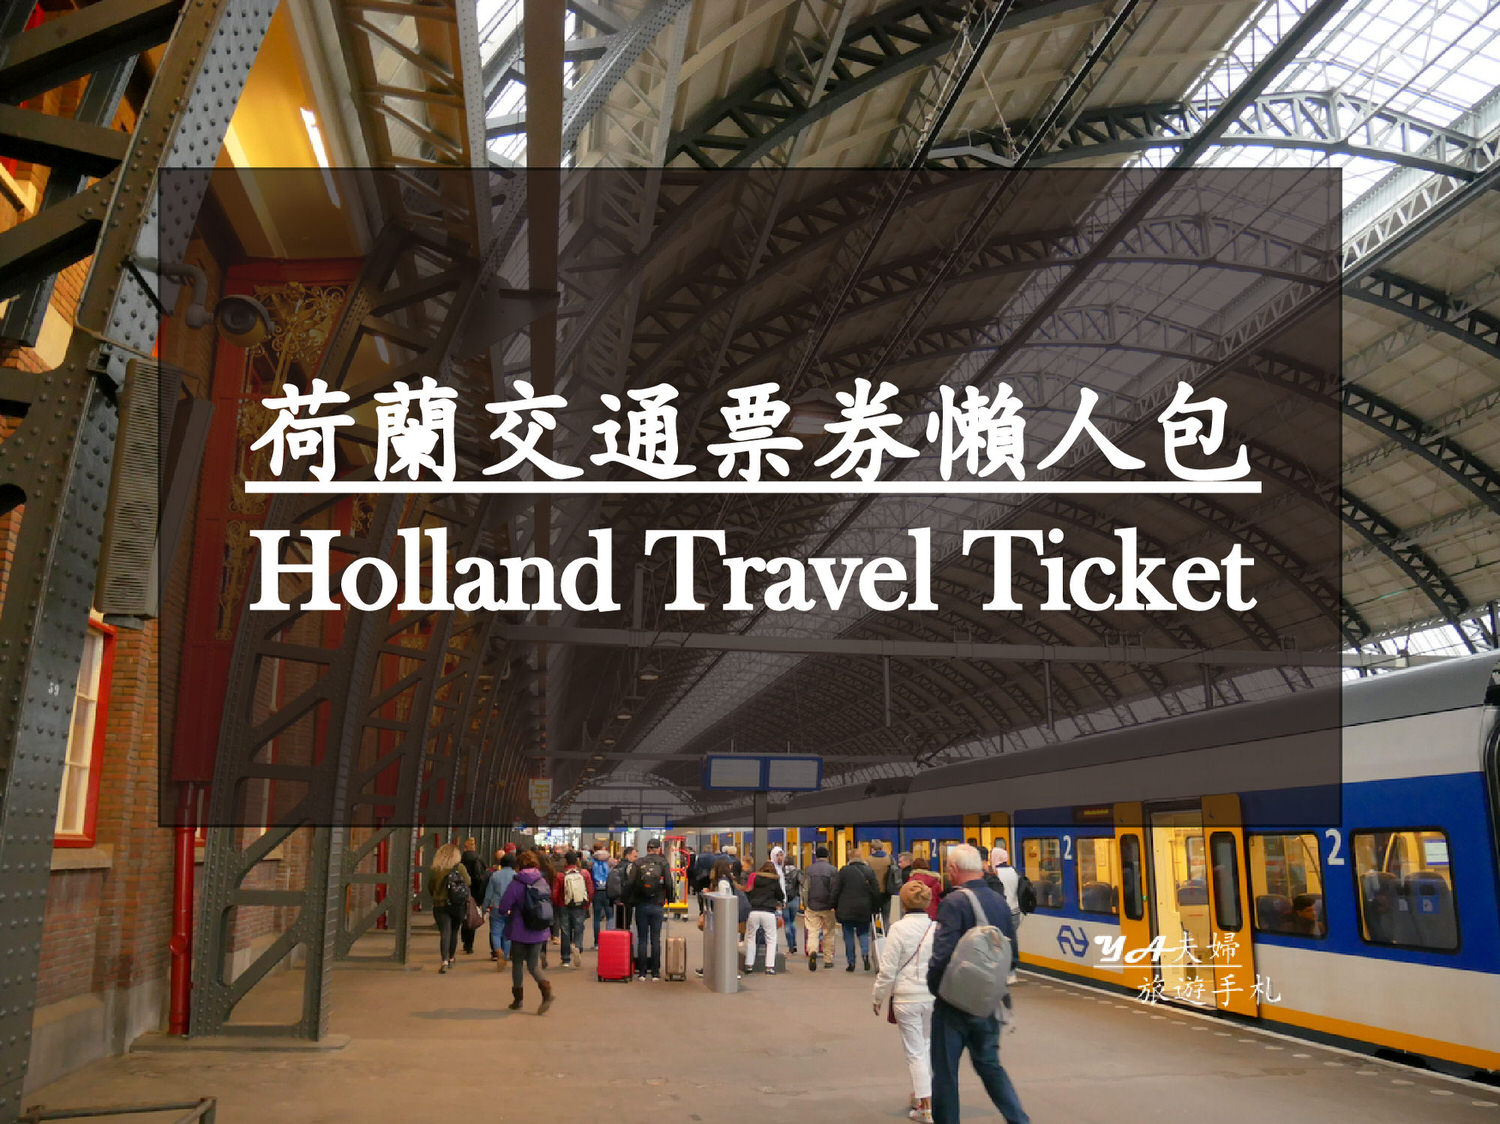 holland-travel-ticket-002